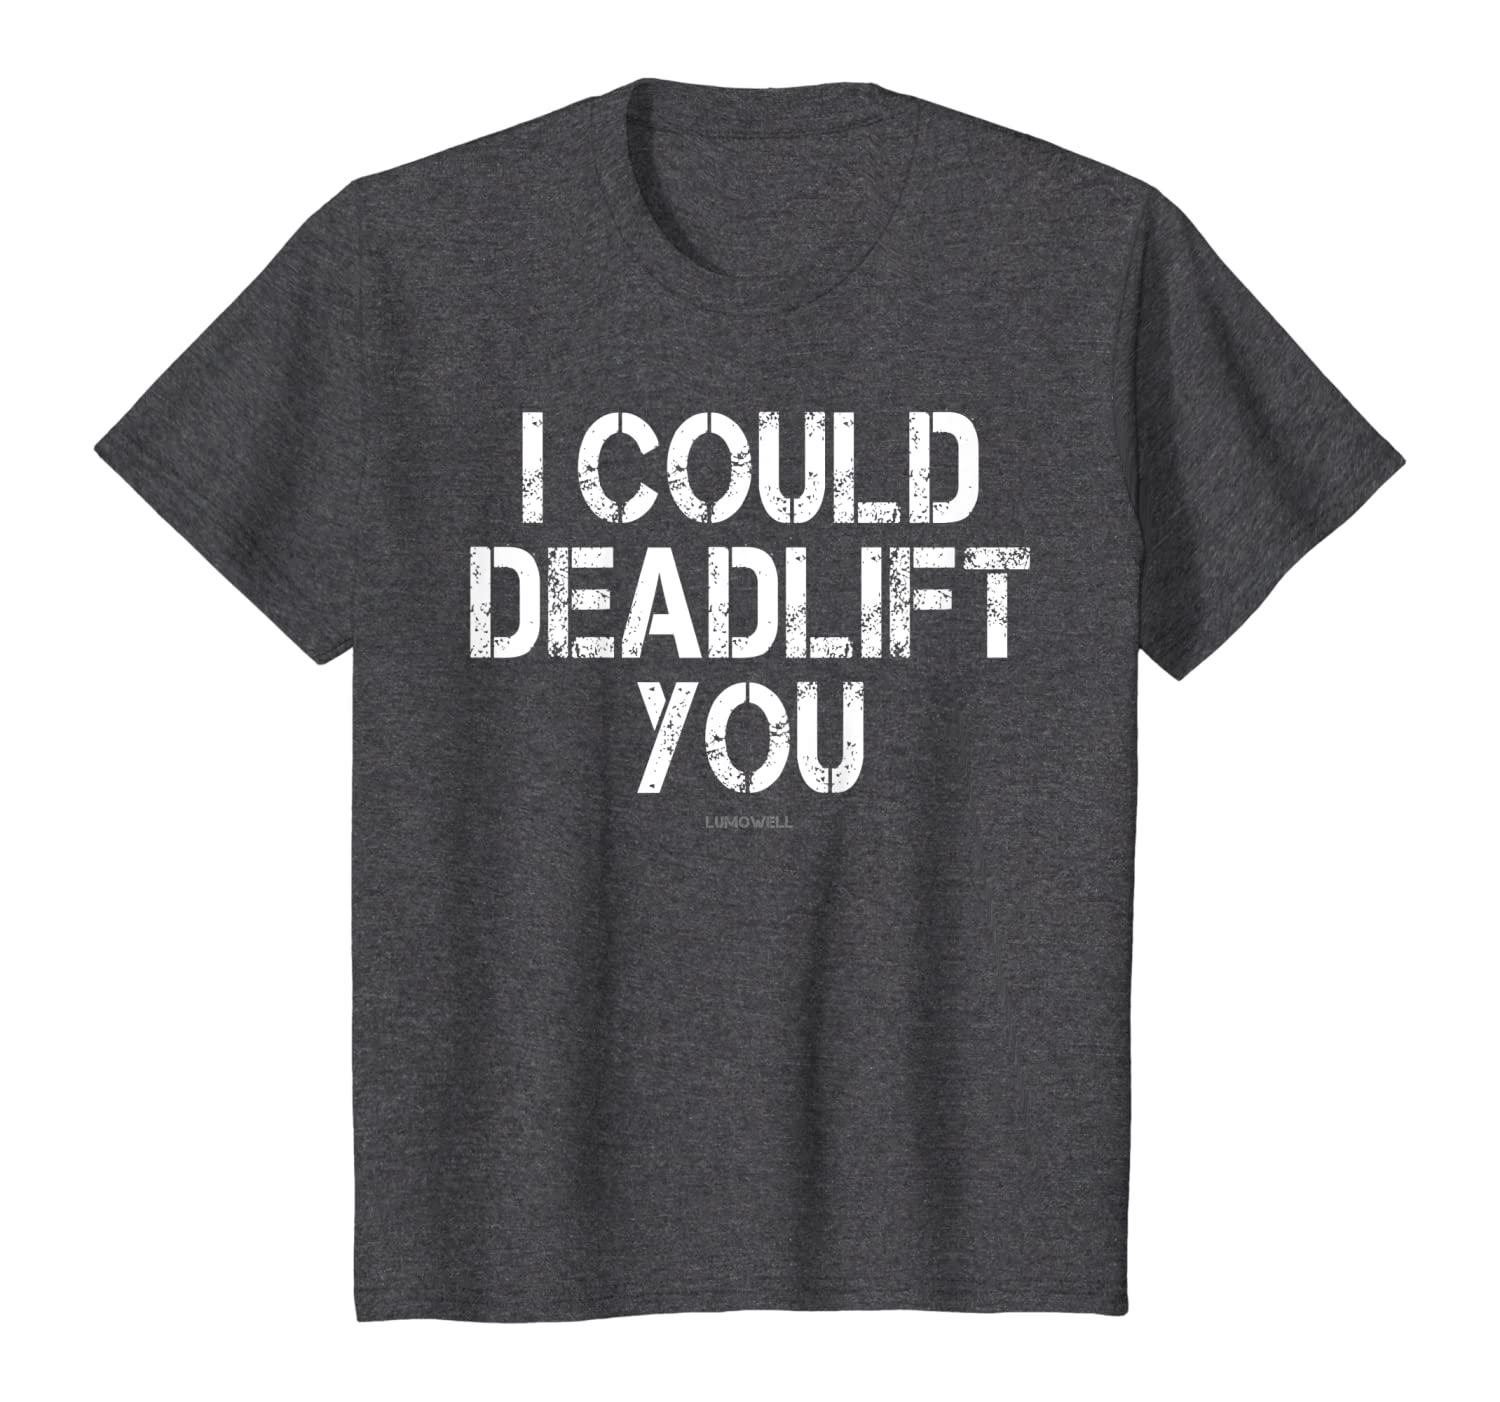 I Could Deadlift You Funny Gym Shirt Funny Fitness Workout